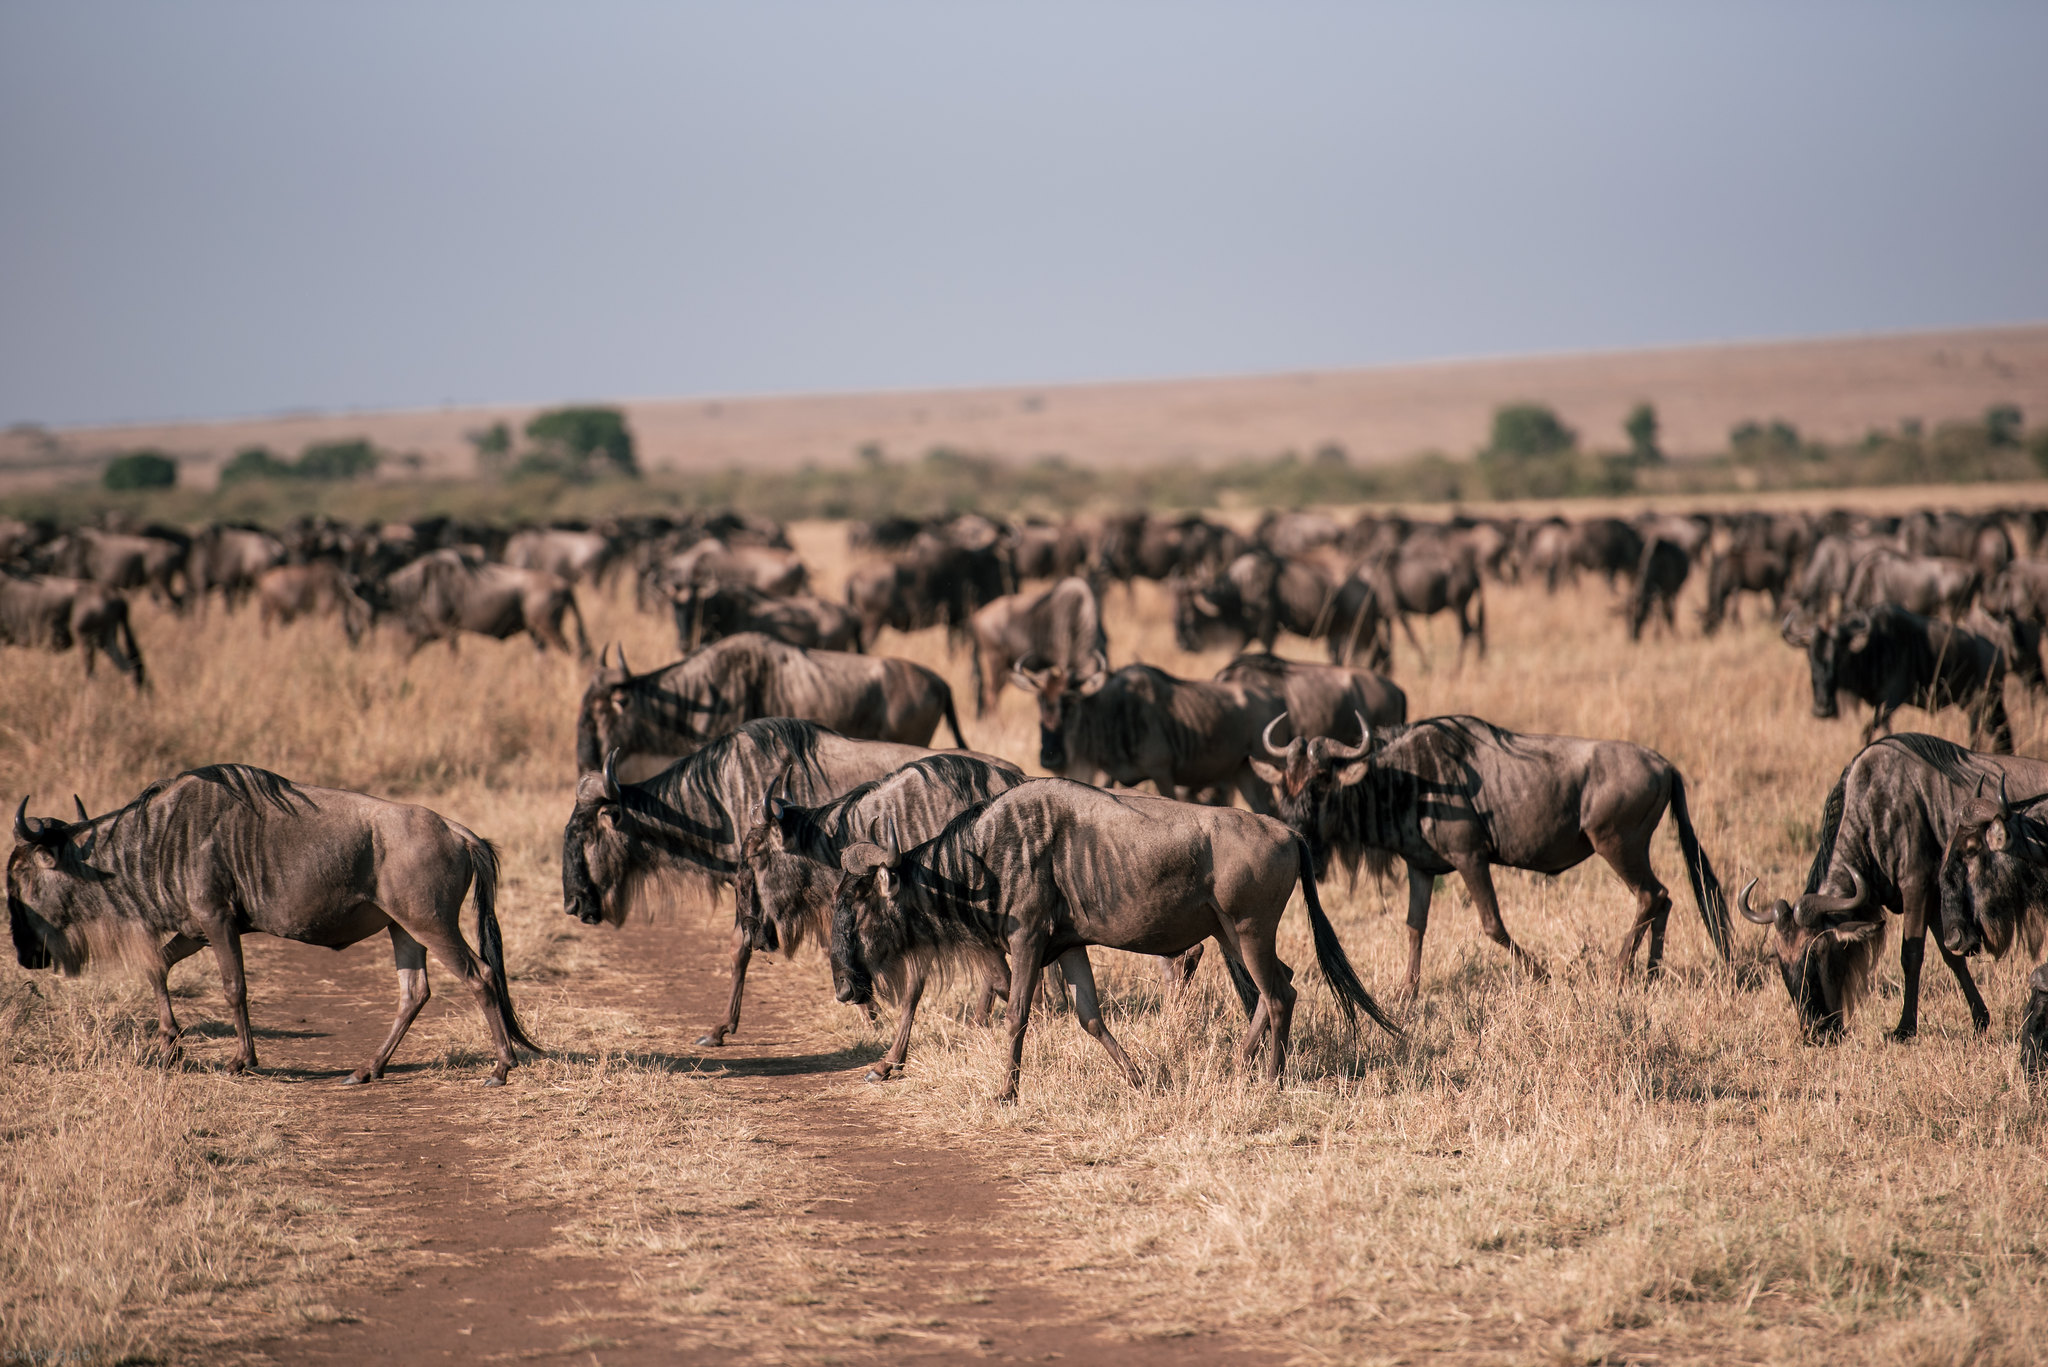 Huge herds of wildebeests